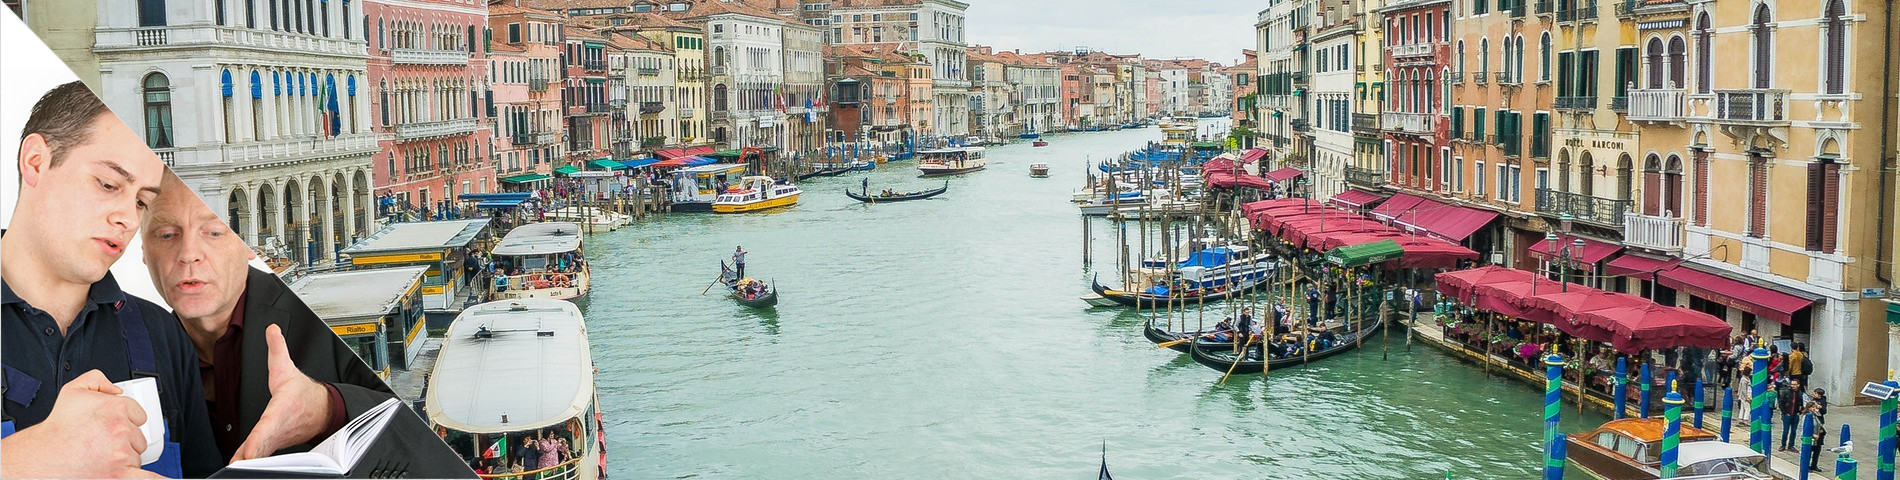 Venise - One-to-one